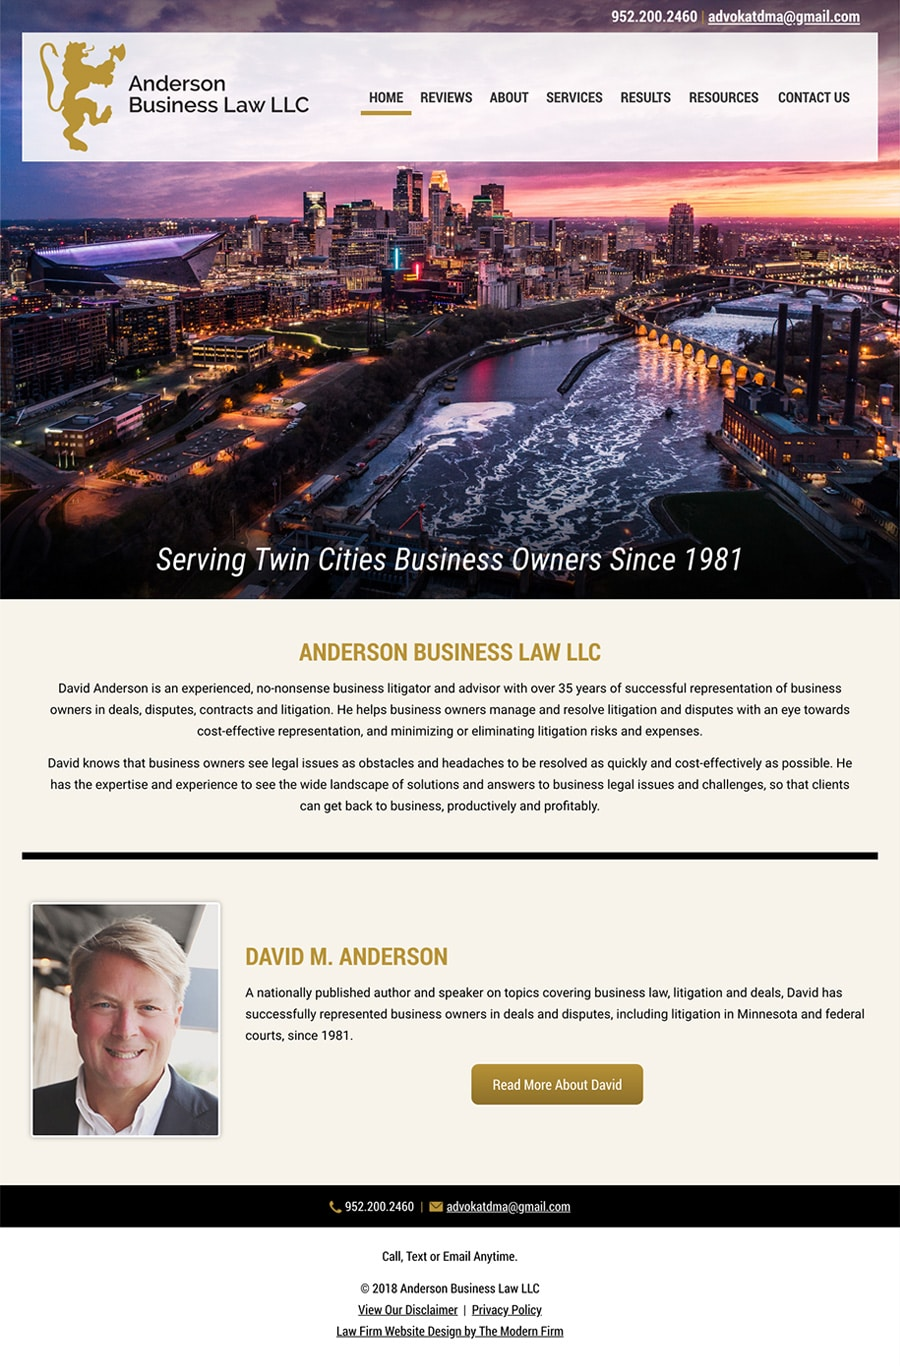 Law Firm Website Design for Anderson Business Law LLC